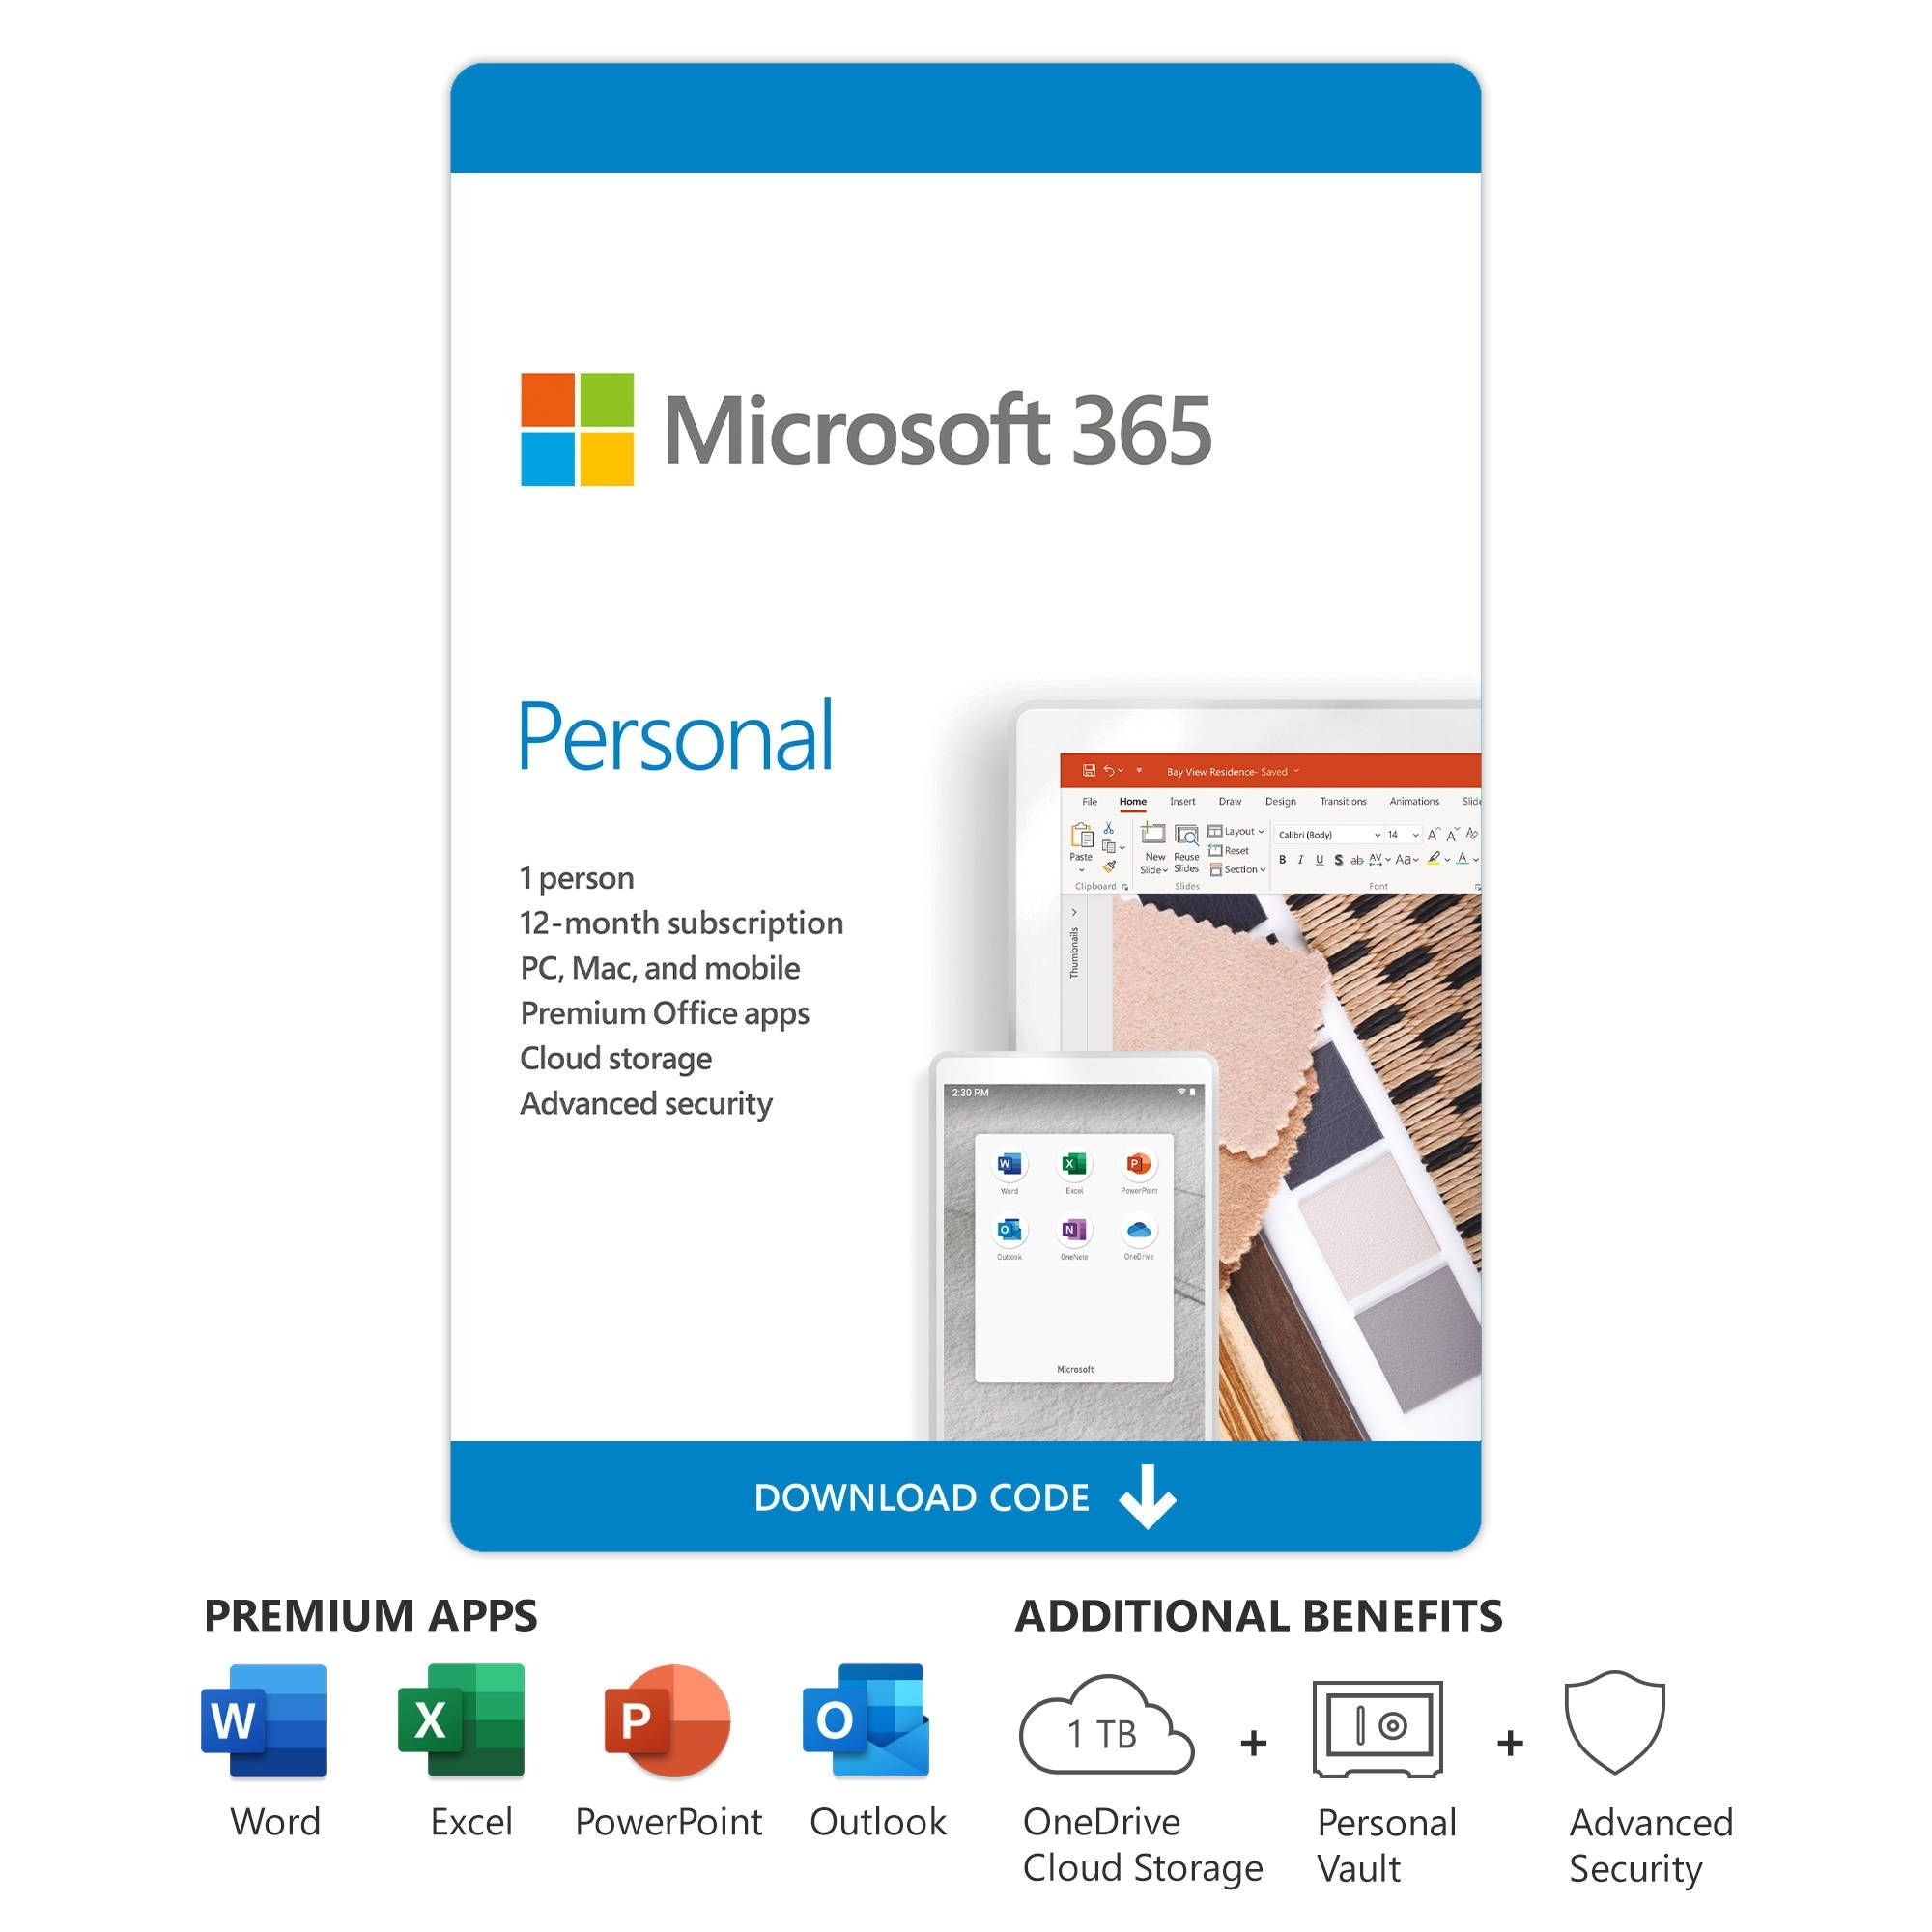 microsoft 365 personal (1 user license / 12 month subscription / download)